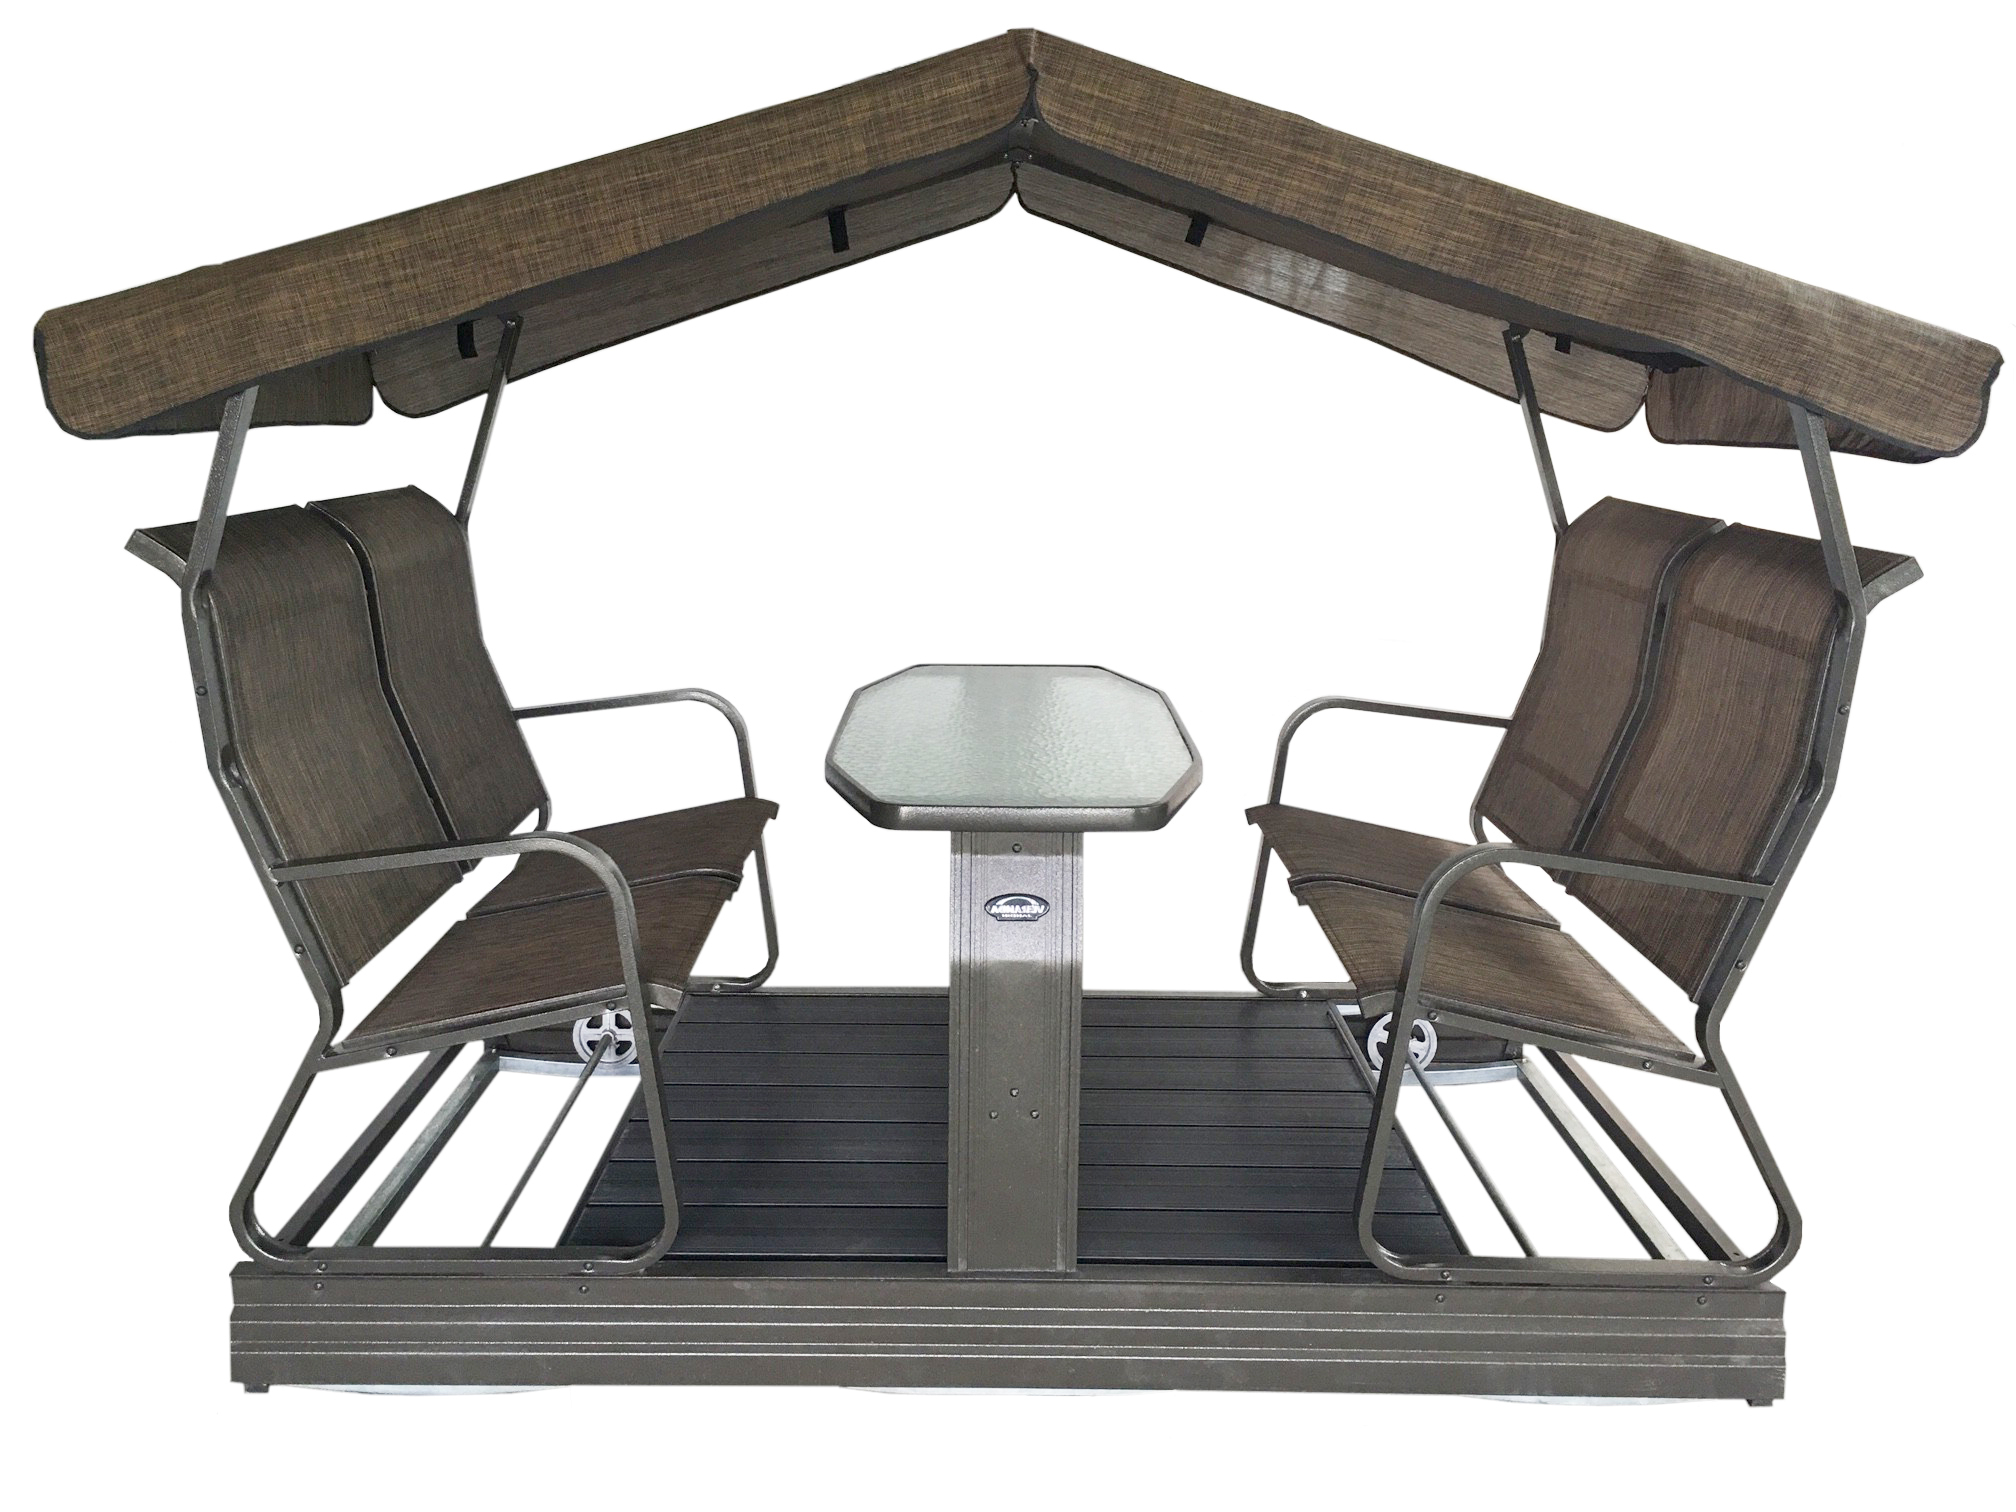 Verano 4 Person Glider – Raber Patio Enclosures & Furniture, Llc Intended For Trendy 1 Person Antique Black Steel Outdoor Gliders (View 19 of 30)